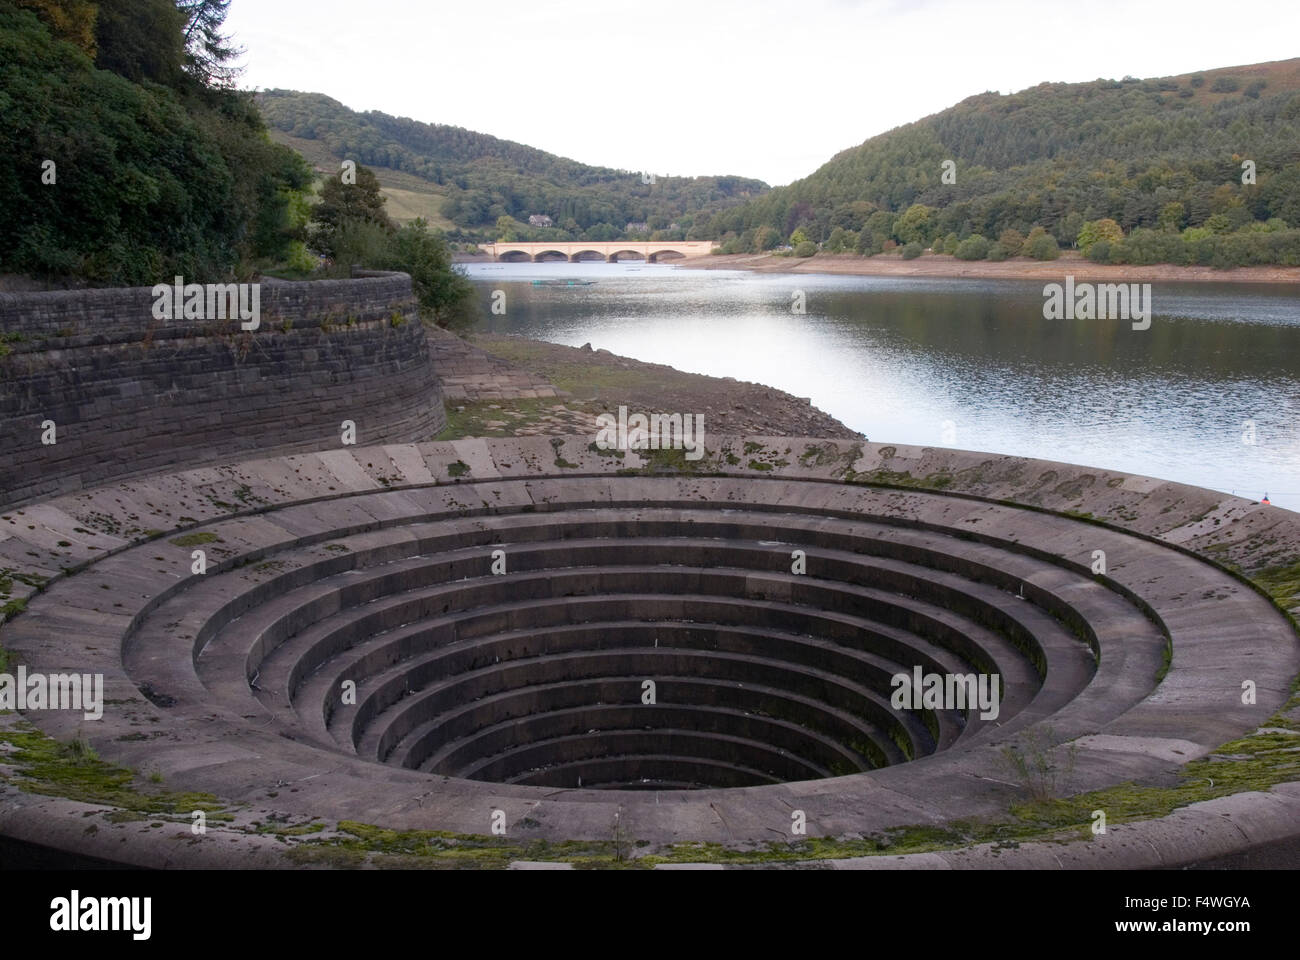 DERBYSHIRE UK - 06 Oct : Ladybower reservoir bellmouth overflow (or plug hole) on 06 Oct 2013 in the Peak District, - Stock Image